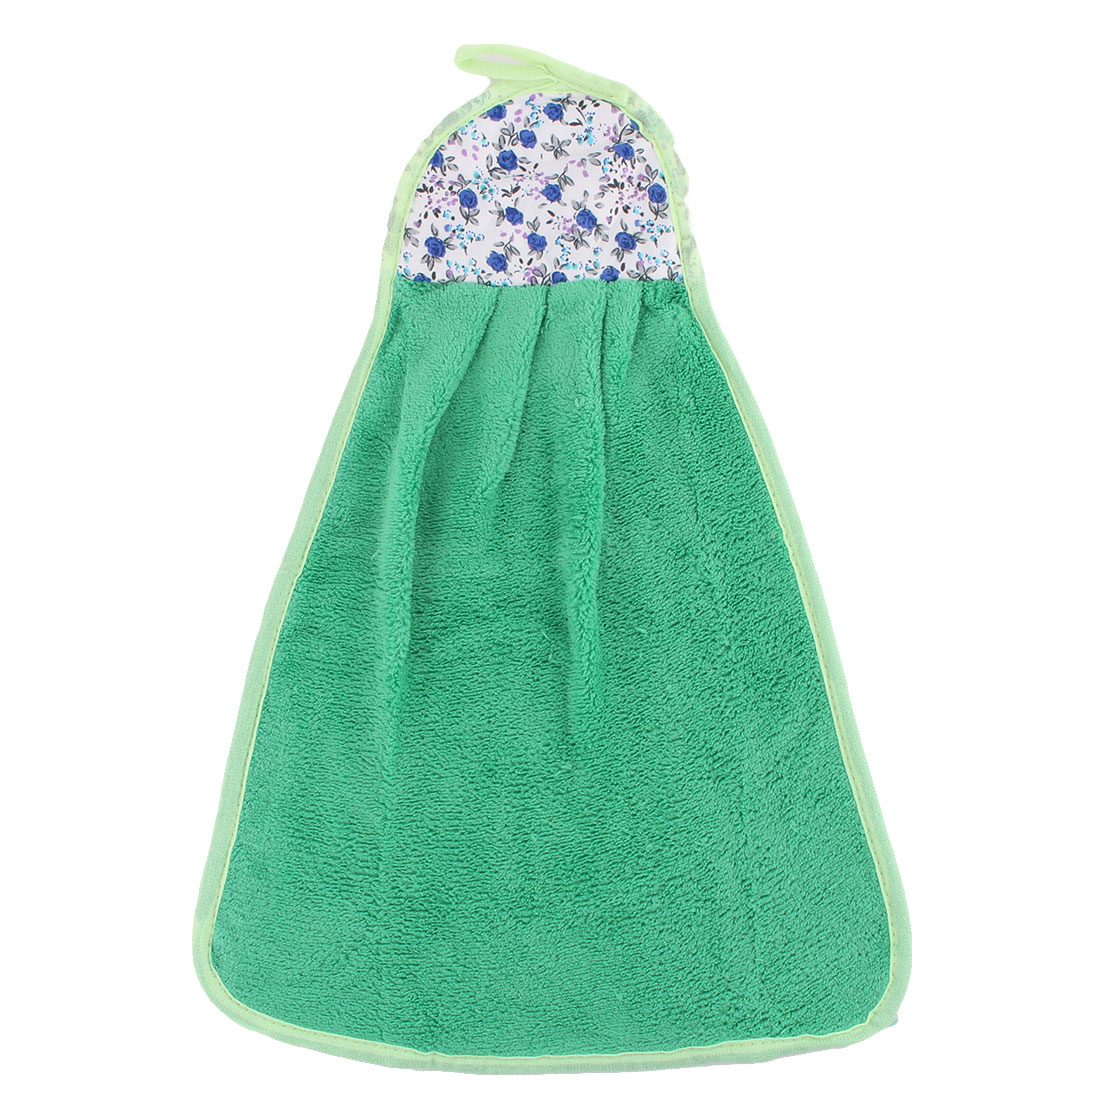 Home Kitchen Coral Velvet Floral Pattern Wall Hanging Hand Drying Towel Green